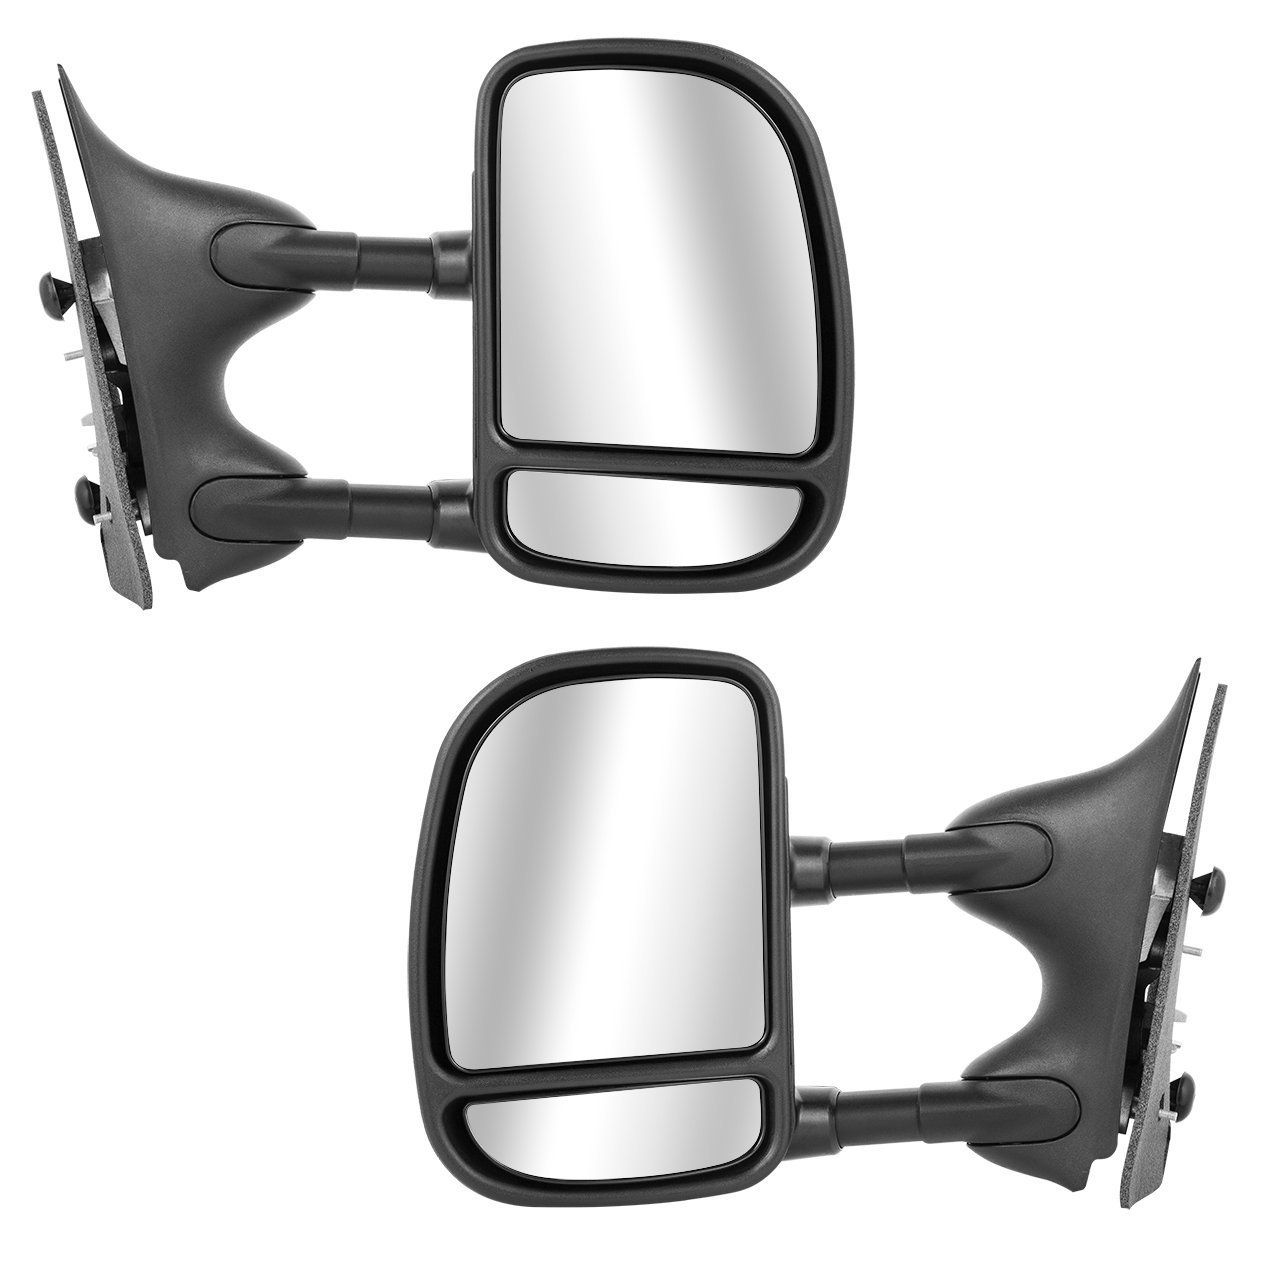 Scitoo 1999 2007 Ford F250 F350 F450 Pair Power Towing Mirrors Side View Mirrors Fit 1999 2000 2001 2002 2003 2004 2 Towing Mirrors Super Duty Trucks Ford F250